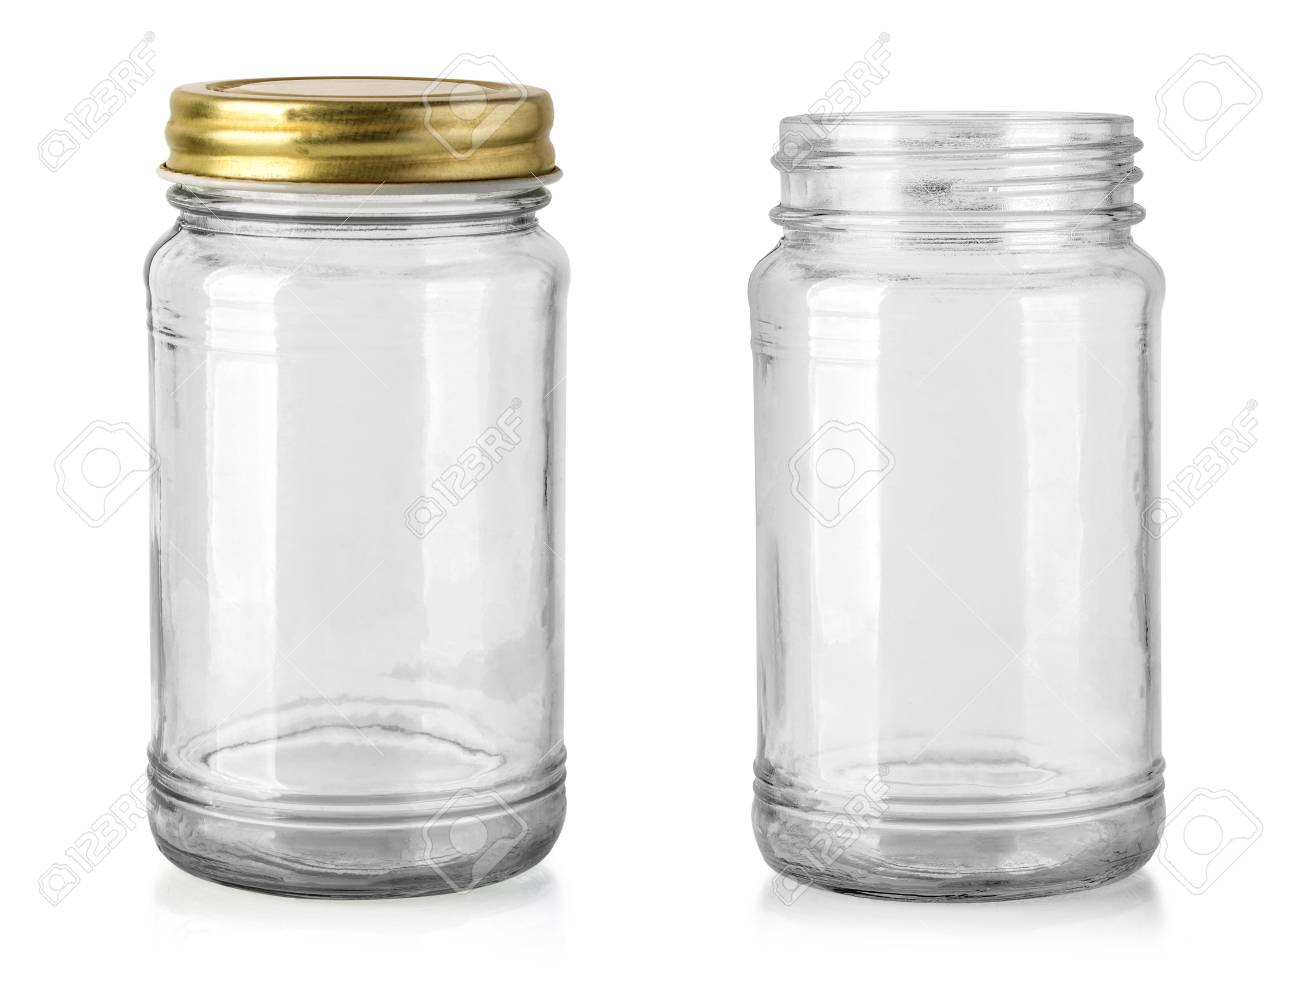 Empty glass jar isolated on white with clipping path - 117163502